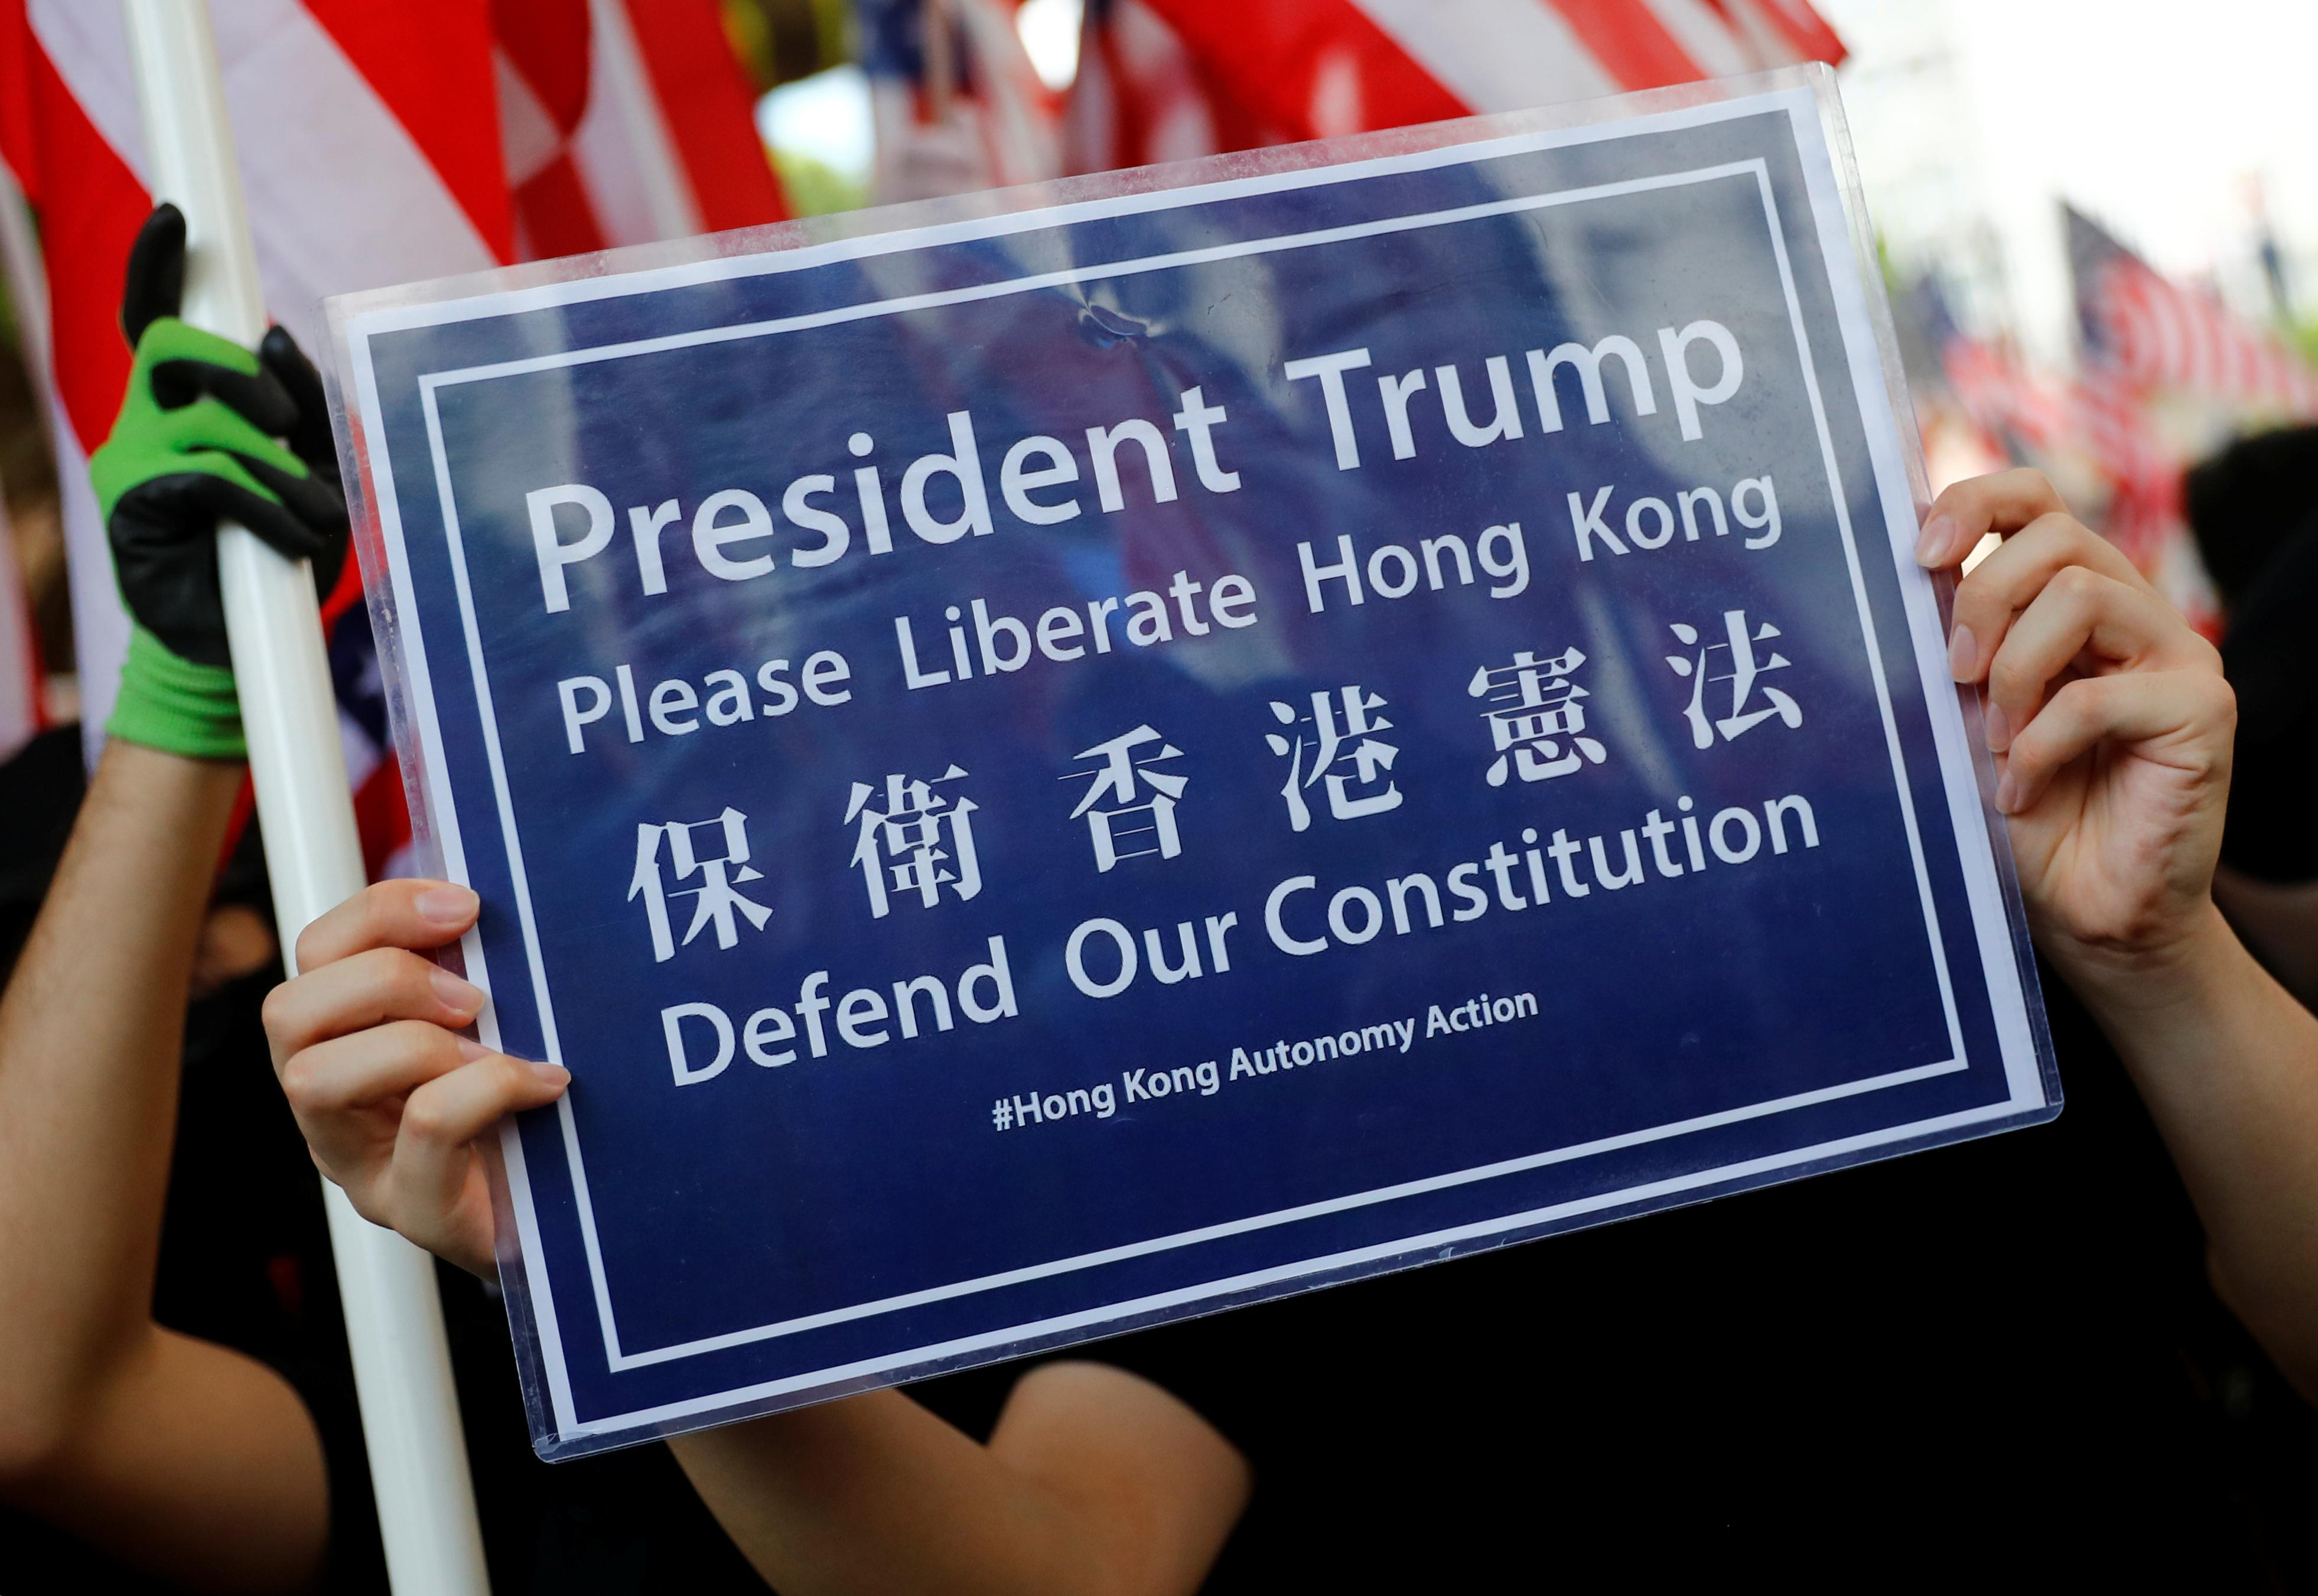 Hong Kong protesters, waving Stars and Stripes, call on Trump to 'liberate' city